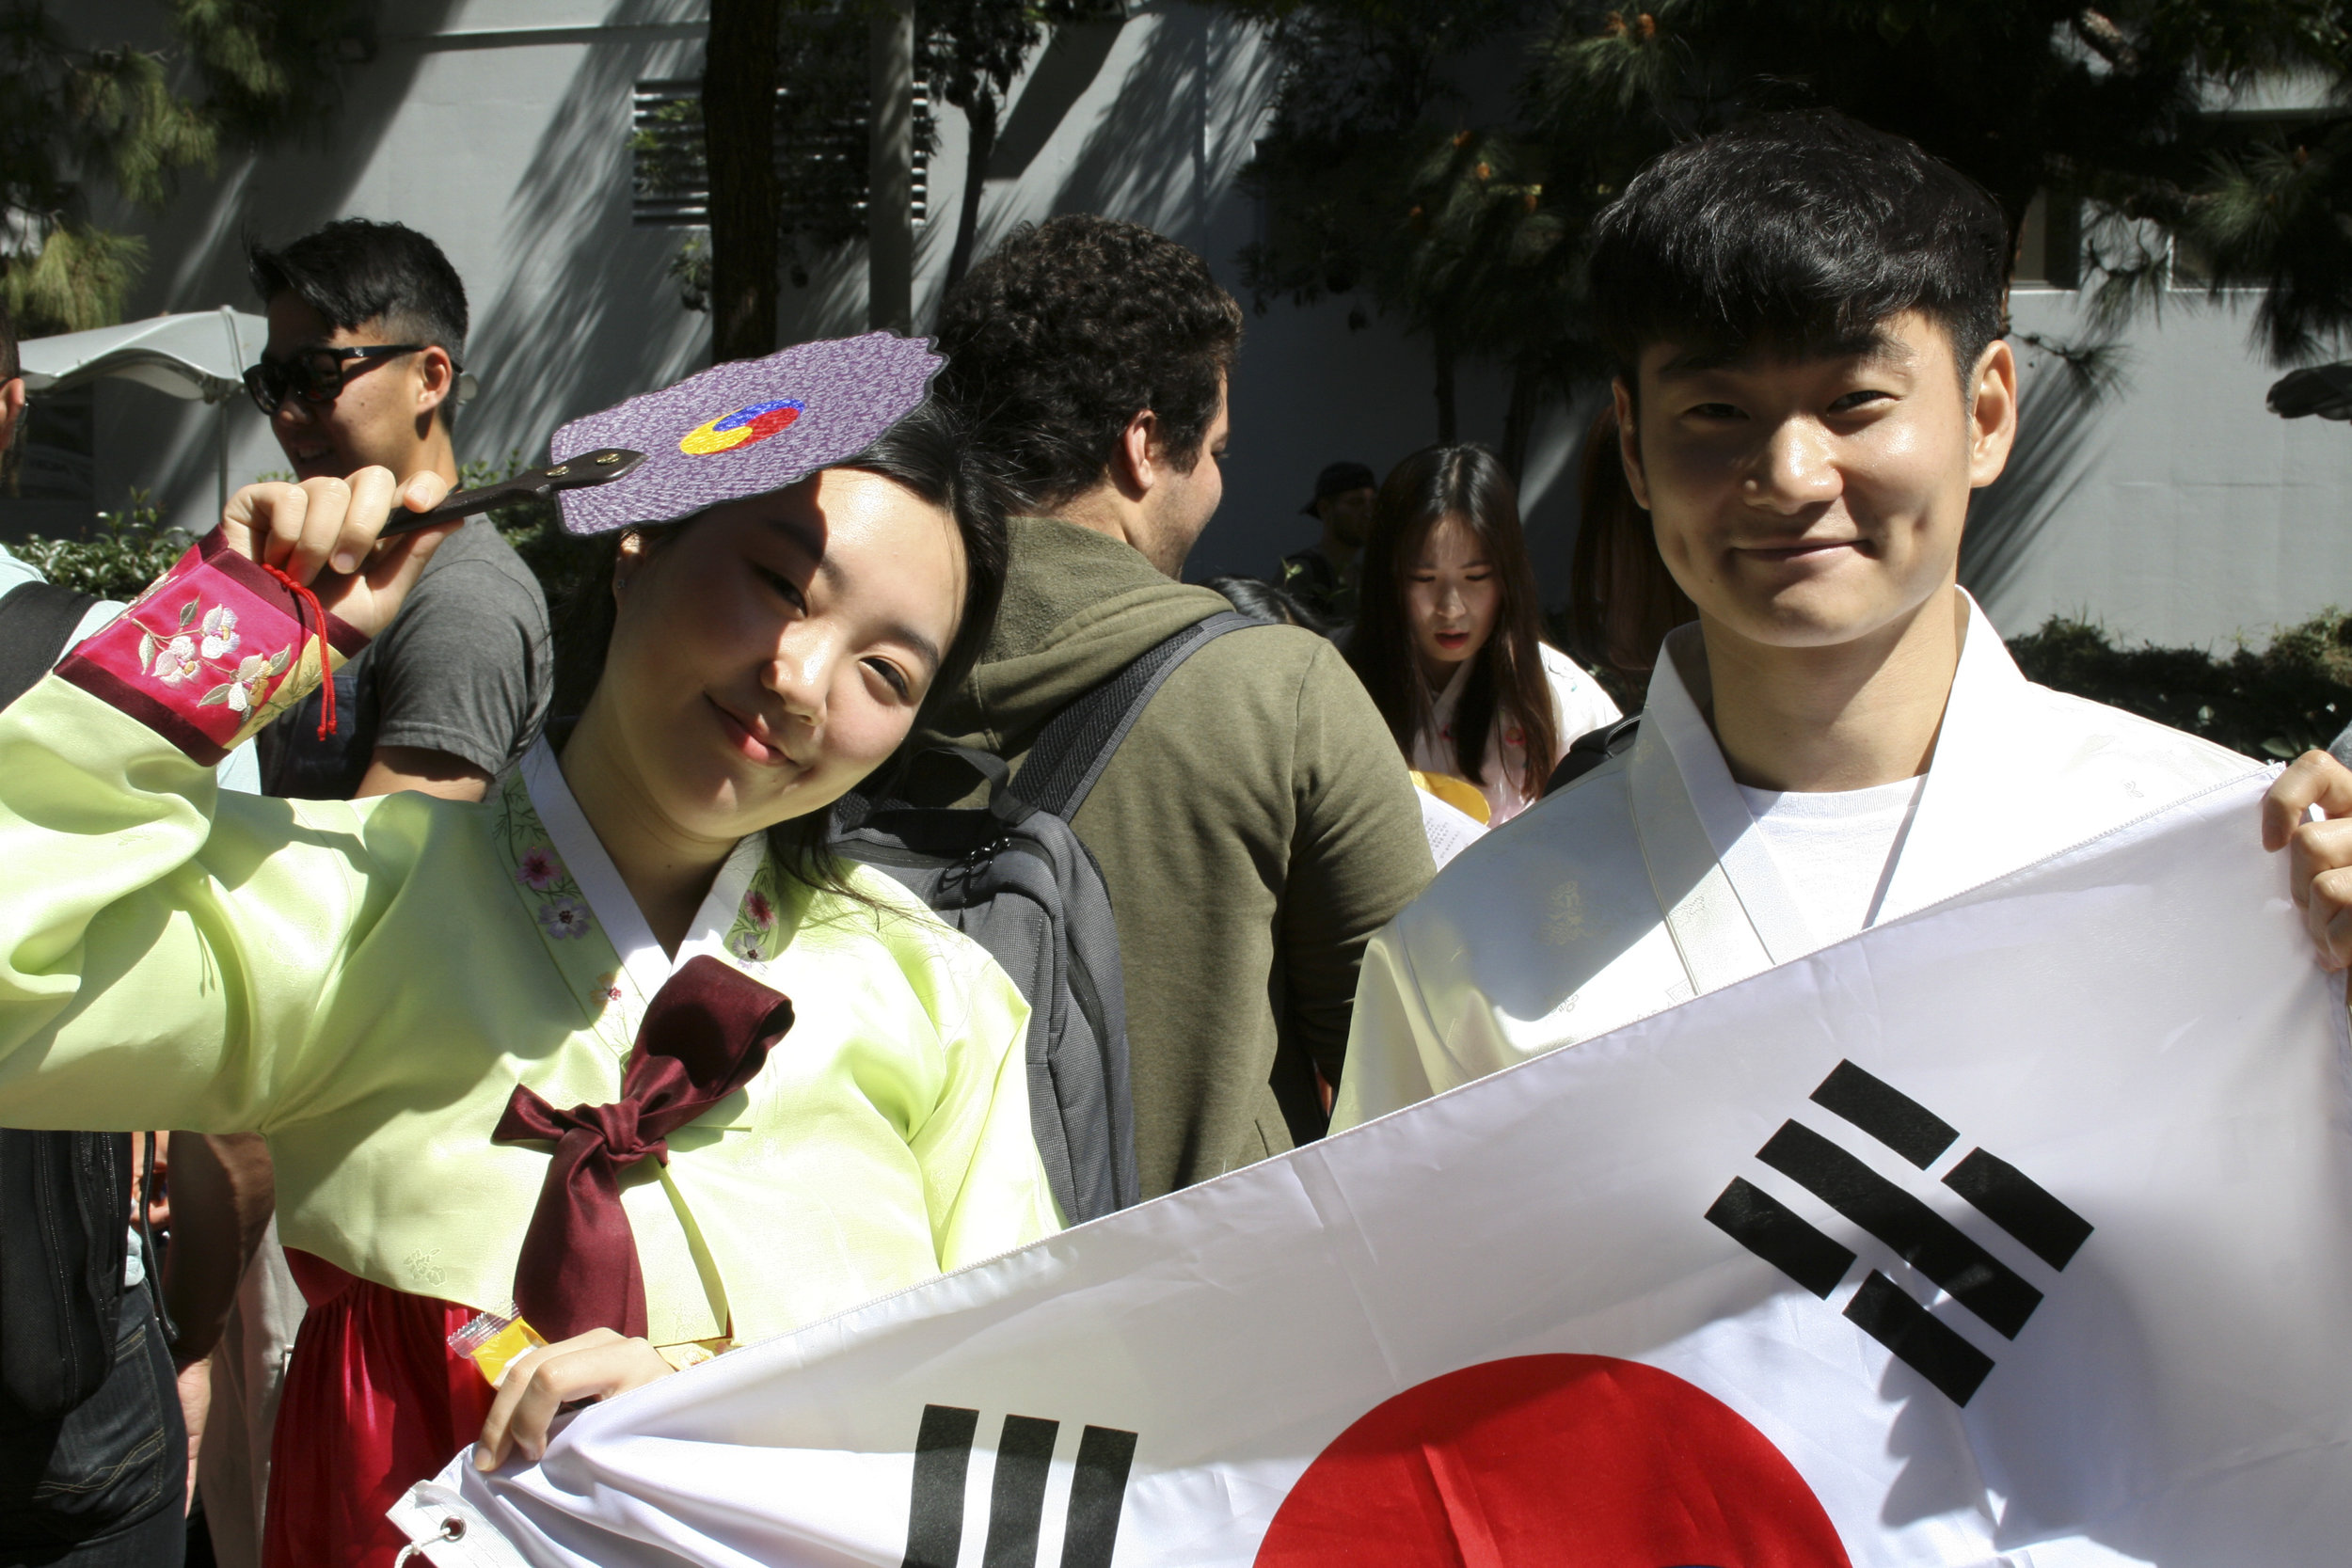 Yoori Kwak (Left) and Byeong-Heon Kim (Right) wear traditional South Korean clothing while holding their flag, promoting the Korean club. Club awareness day at main campus Santa Monica College, March 28, 2019. (Janet Ali/ The Corsair)